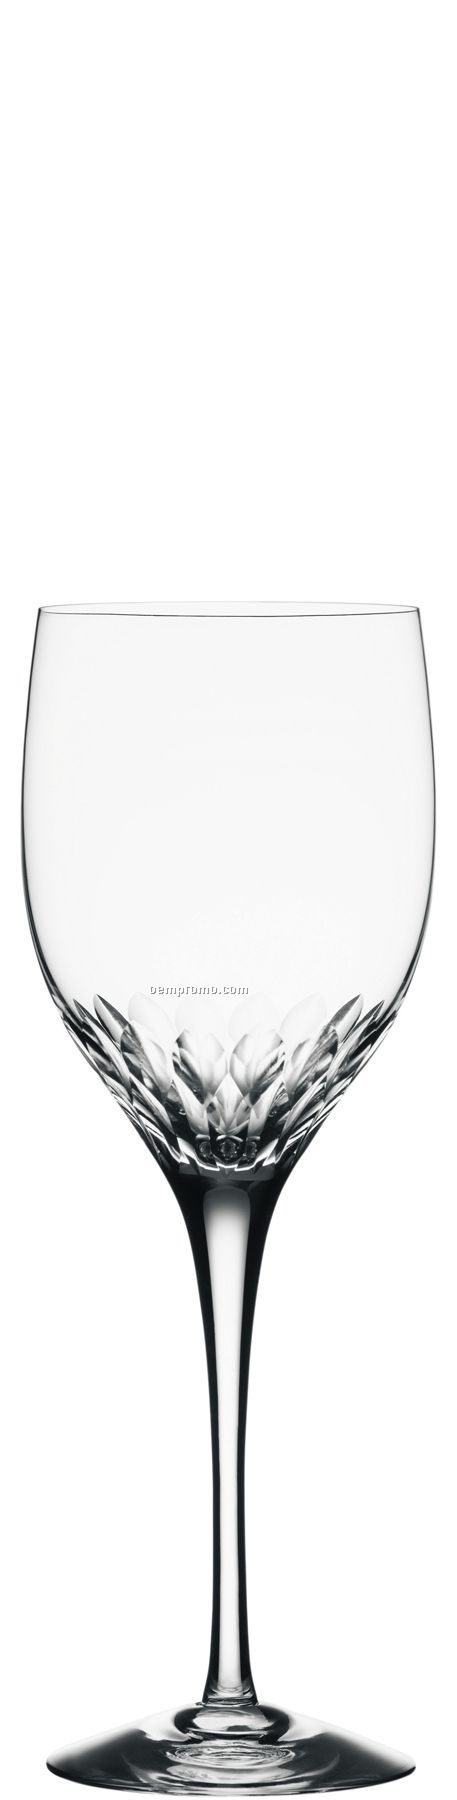 Prelude Crystal Claret Glass W/ Leaf Pattern